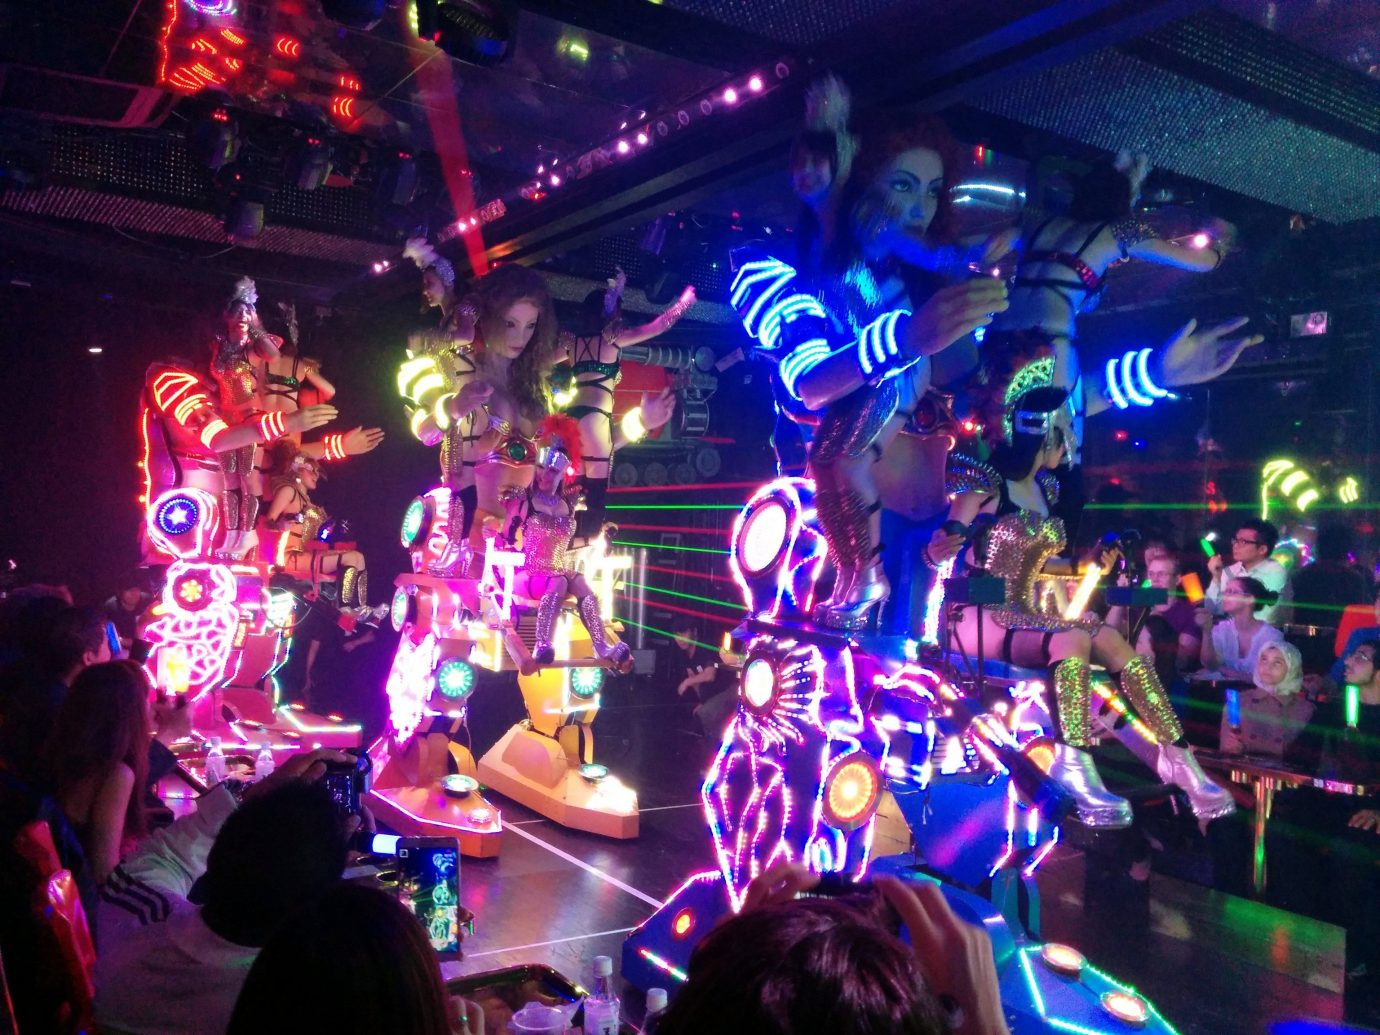 Offbeat person scene stage indoor nightclub group club disco Music crowd people music venue